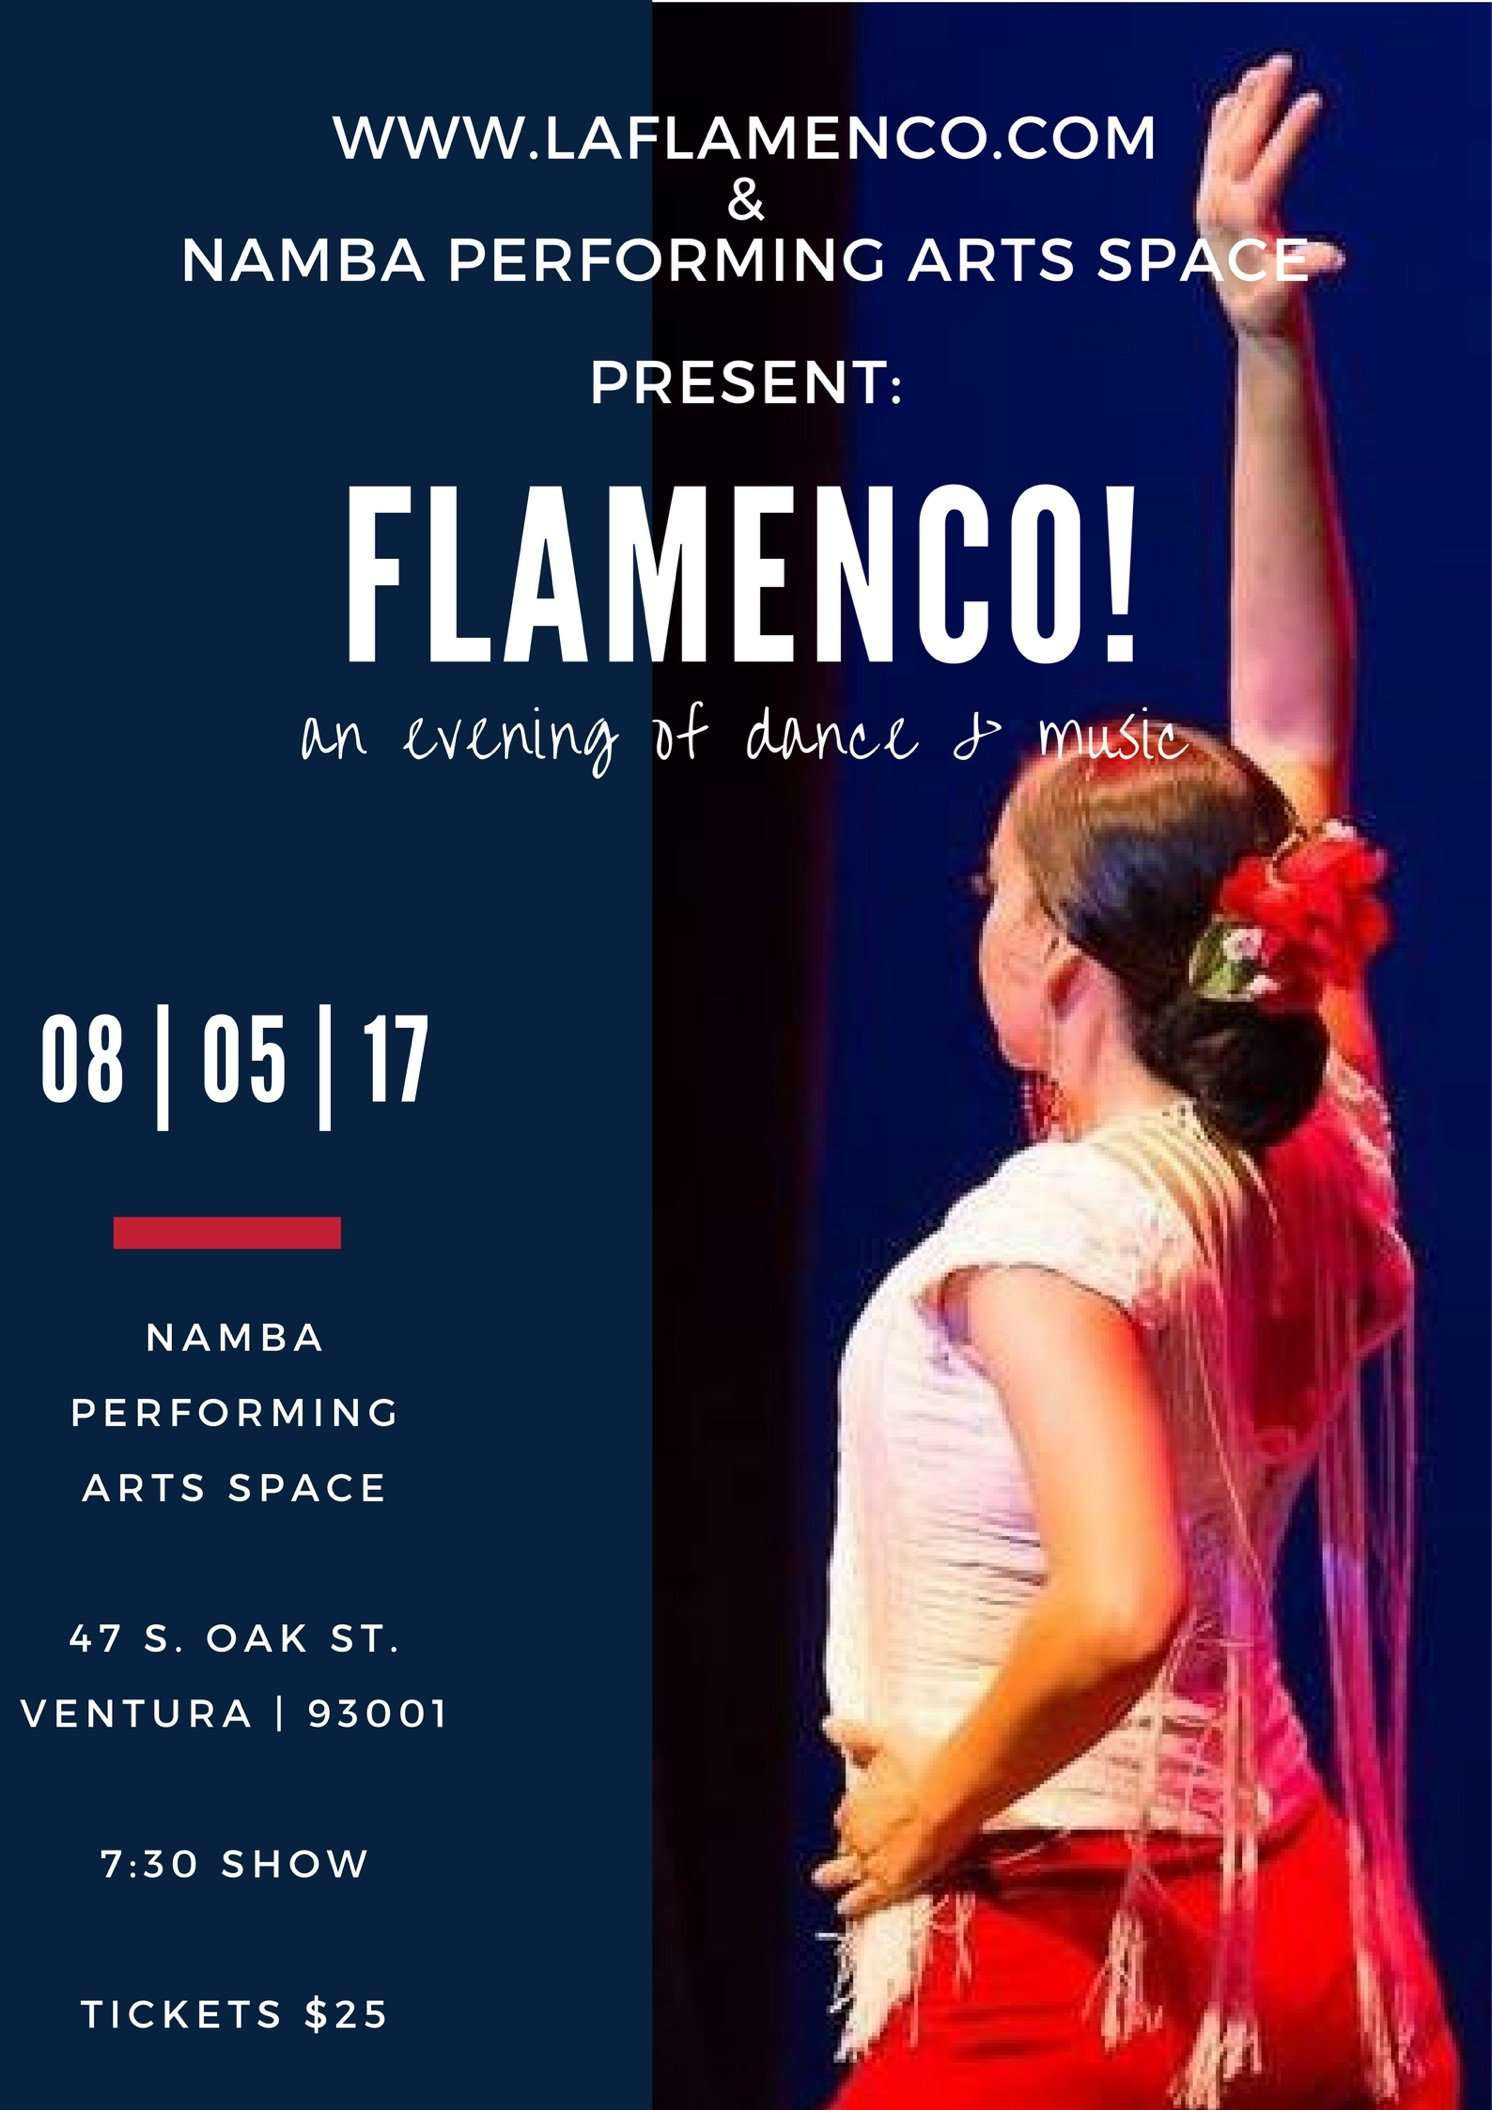 August 05, 2017: Flamenco…..An Evening of Dance & Music